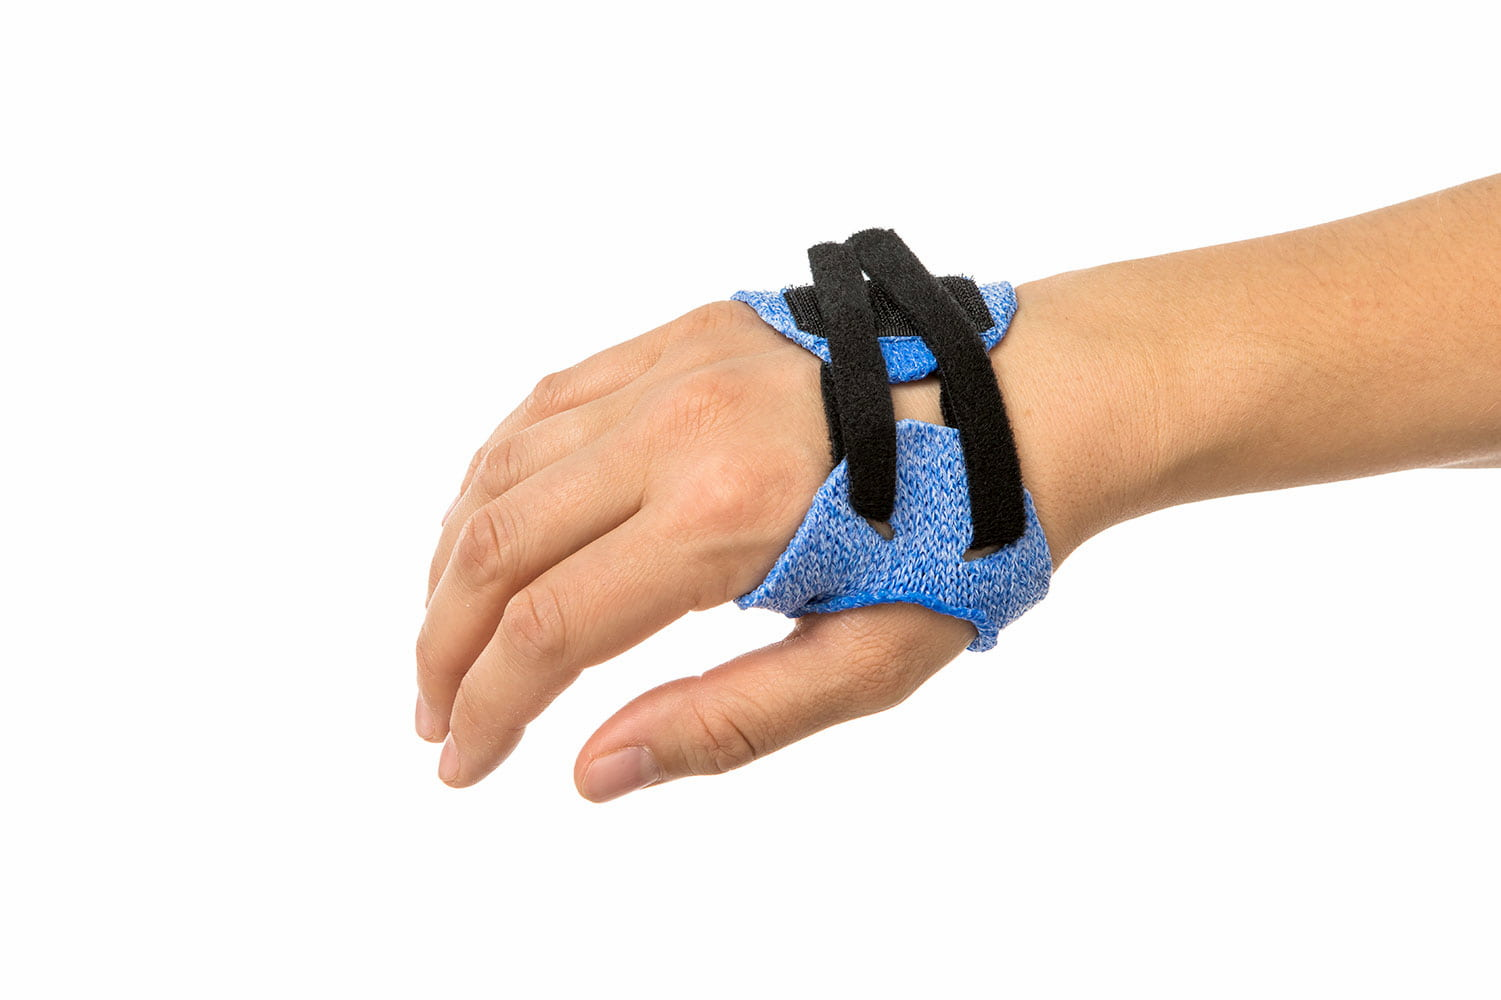 Dorsal orthosis in Orficast Blue